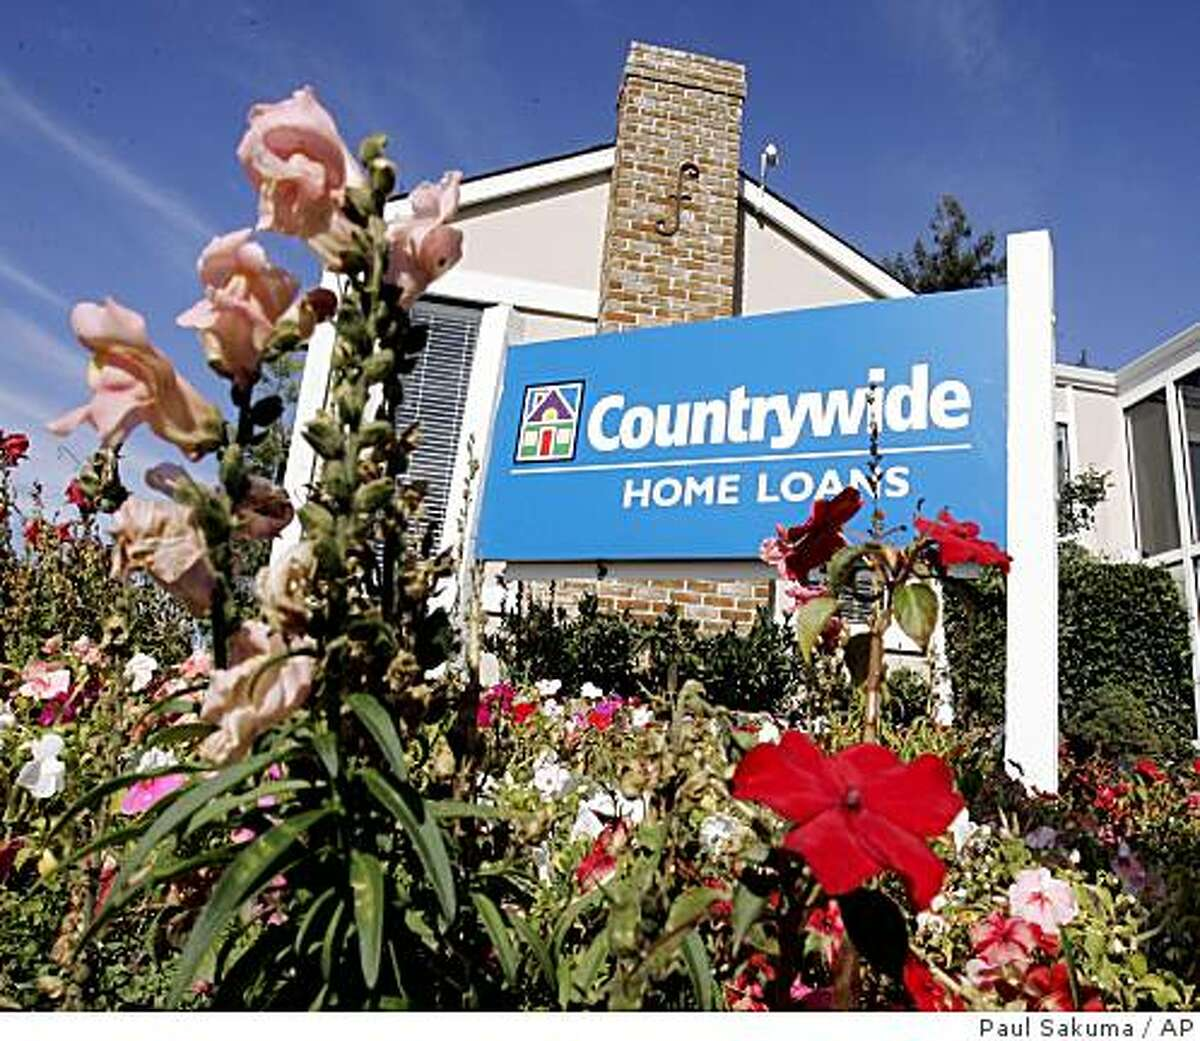 ** FILE ** The exterior view of a Countrywide banking and loan office in San Mateo, Calif. is seen in this Oct. 26, 2007 file photo. Countrywide Financial Corp.'s shares tumbled for the second day Wednesday, Jan. 9, 2008, after the nation's largest mortgage lender said the delinquency and foreclosure rate of home loans in its portfolio surged in December. The news drove Countrywide shares down almost 10 percent in midday trading. (AP Photo/Paul Salkuma, file)